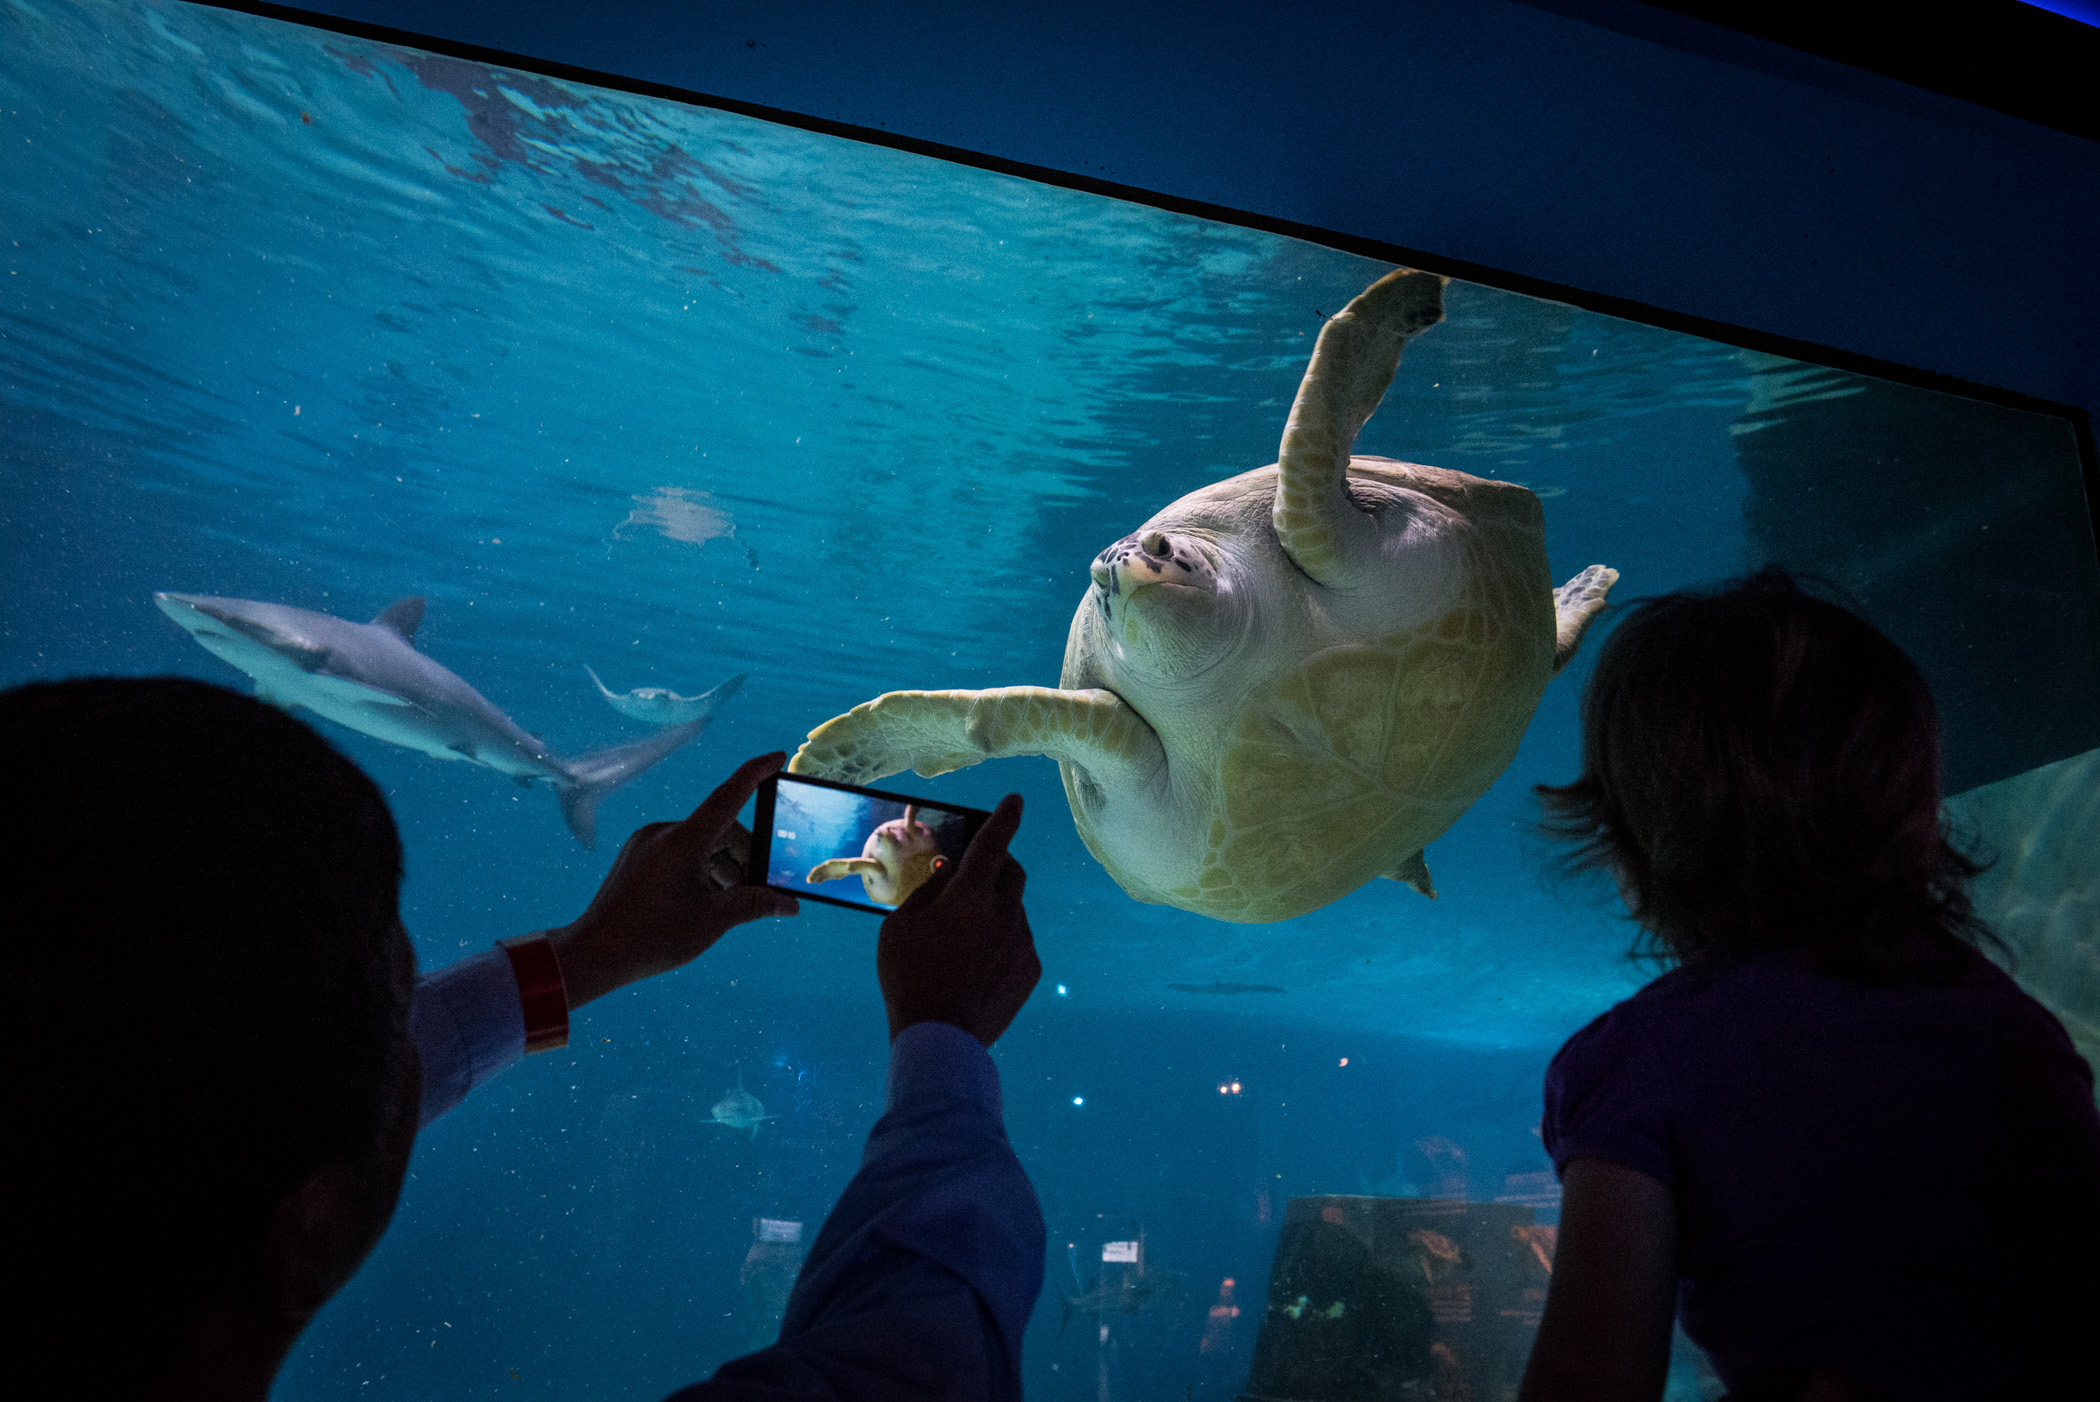 A man shoots video on his phone as a sea turtle swims by at the Adventure Aquarium in Camden, N.J., on Friday, June 17, 2016. The new Sea Turtle Cove exhibit will focus on endangered species of sea turtles from around the globe, as well the resident loggerhead and green sea turtles at the aquarium, and will officially open to visitors on Saturday, June 18, 2016. (Michael Ares / Philadelphia Inquirer)